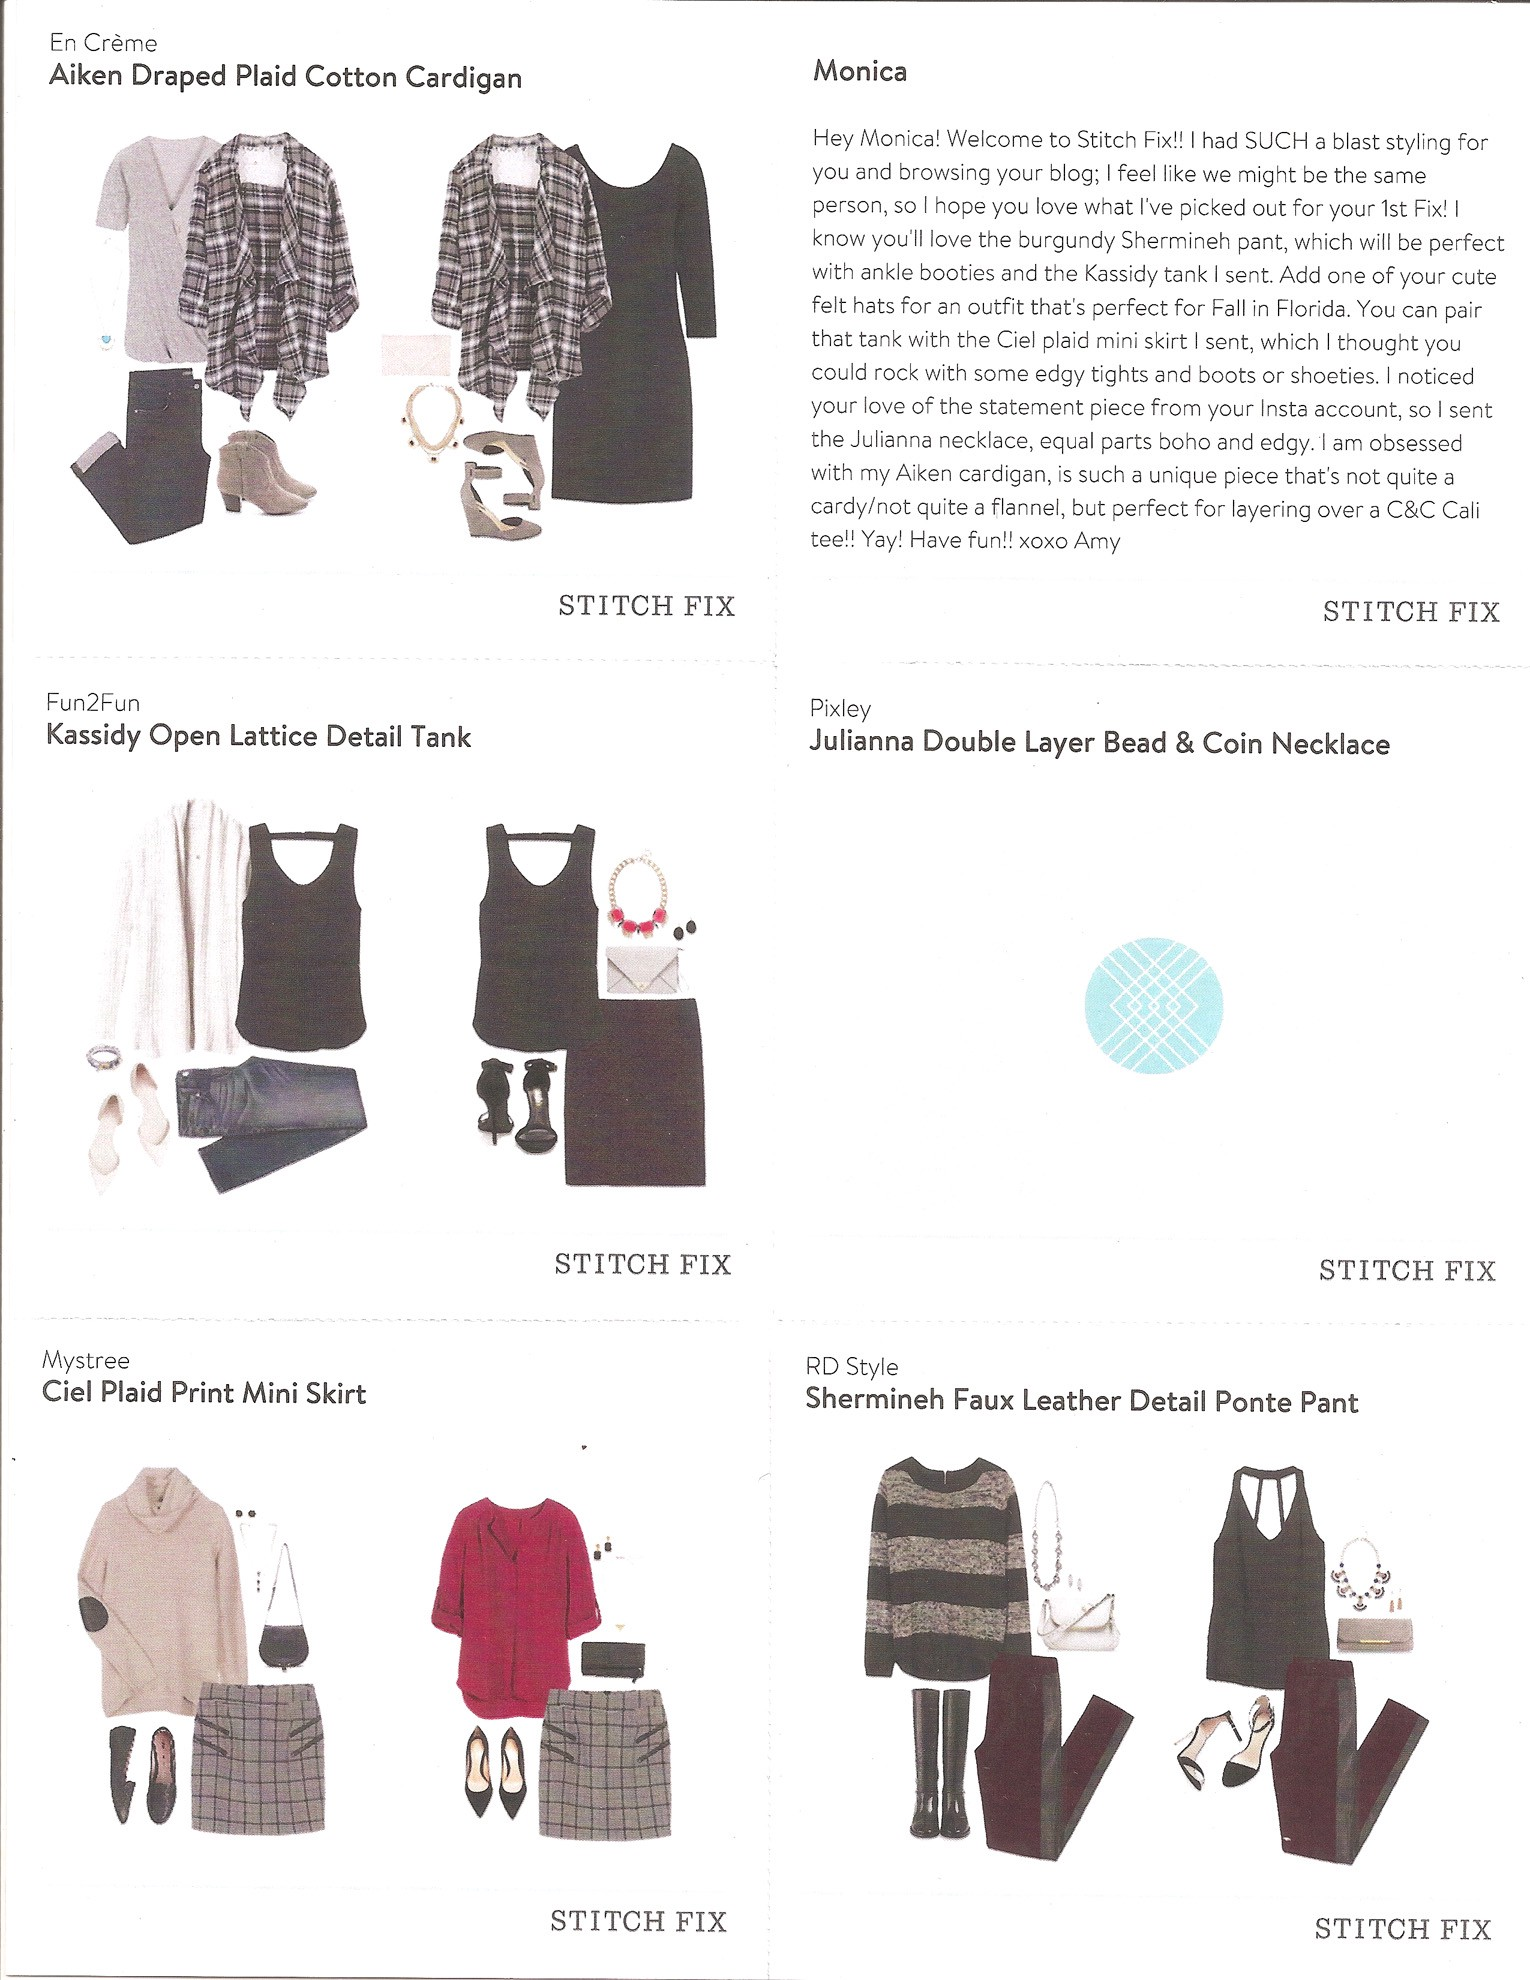 Stitch fix ipo prospectus